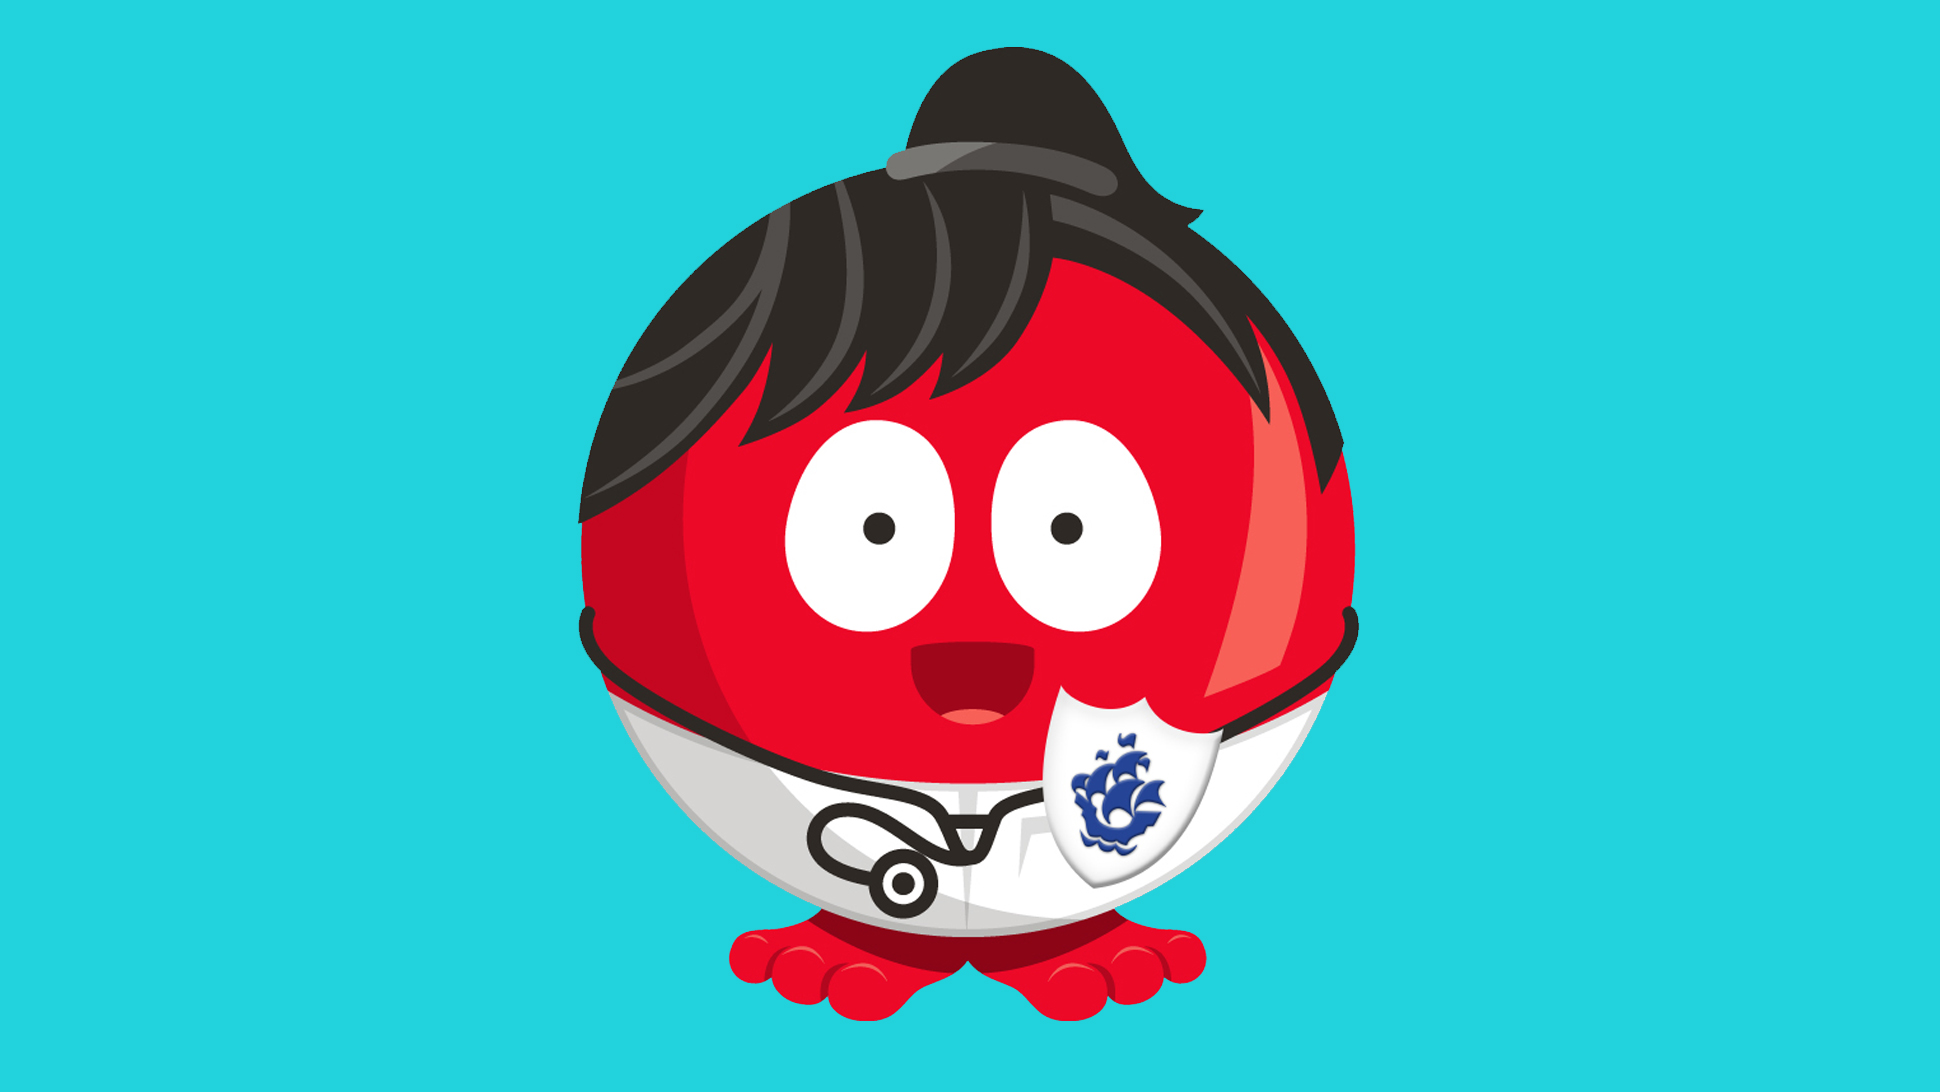 red nose day clipart - Clipground